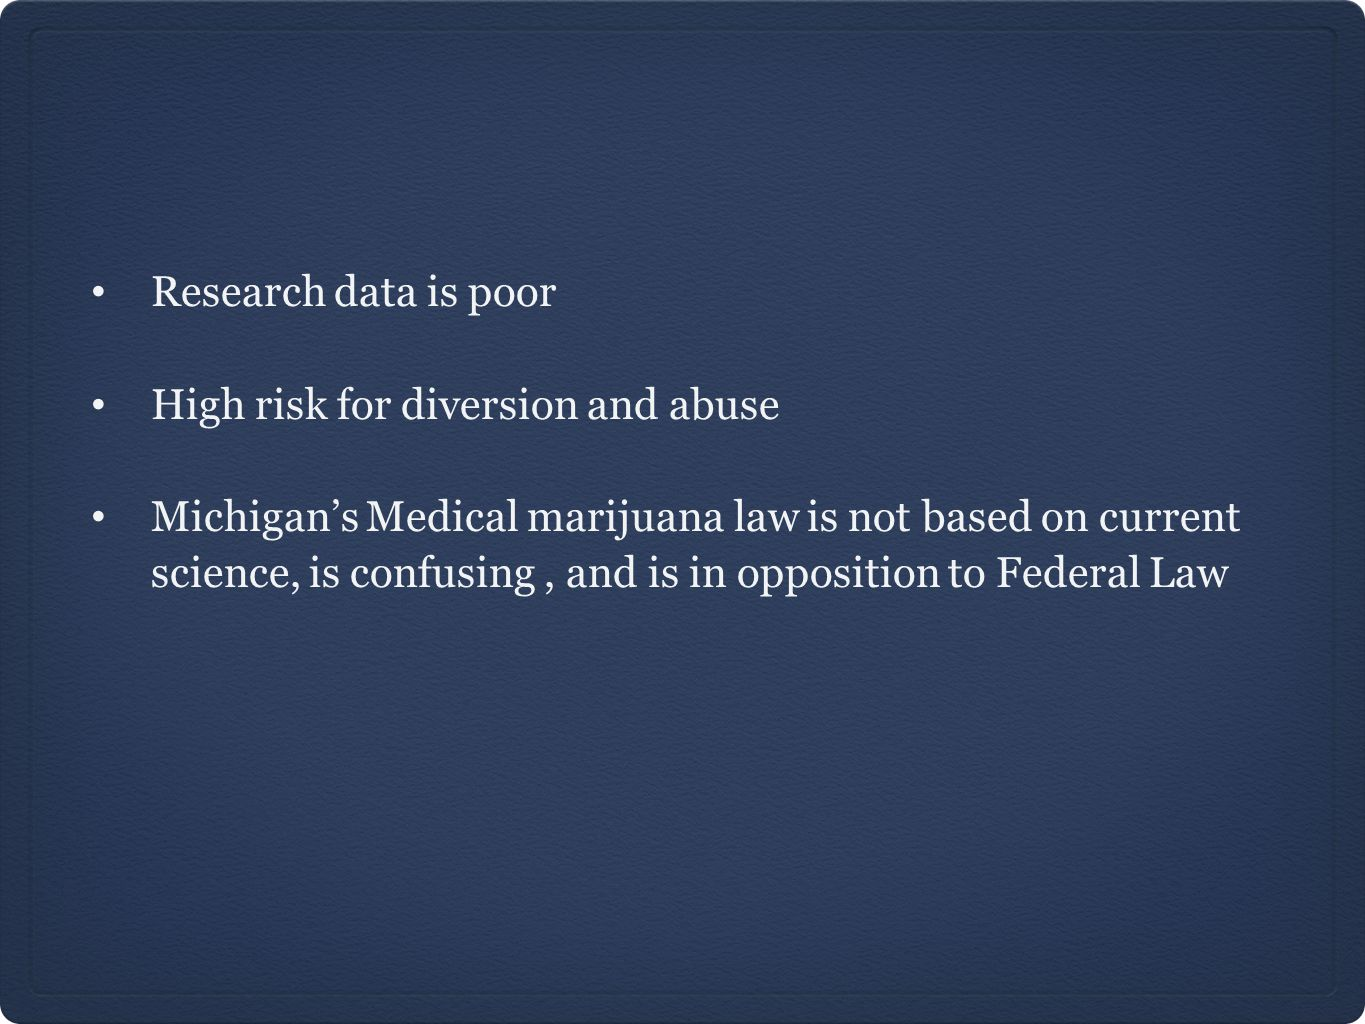 Research data is poor High risk for diversion and abuse.